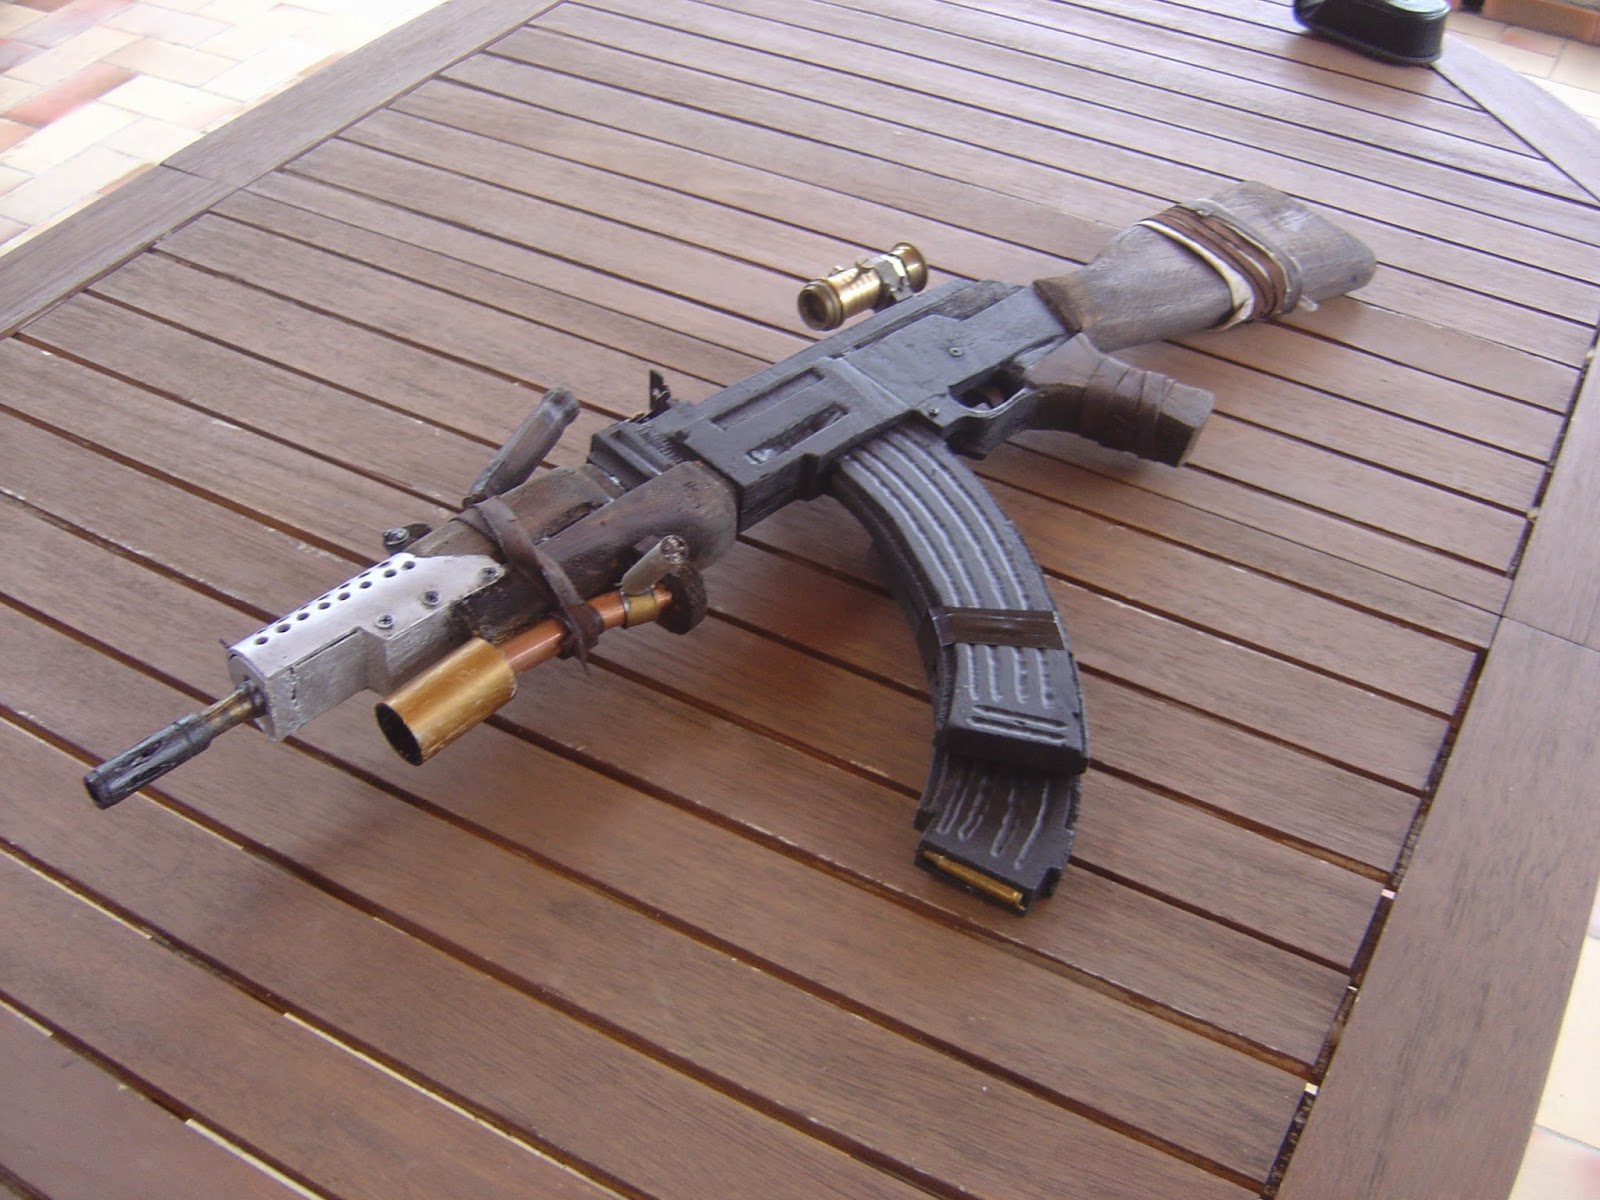 ak-47 tom raider